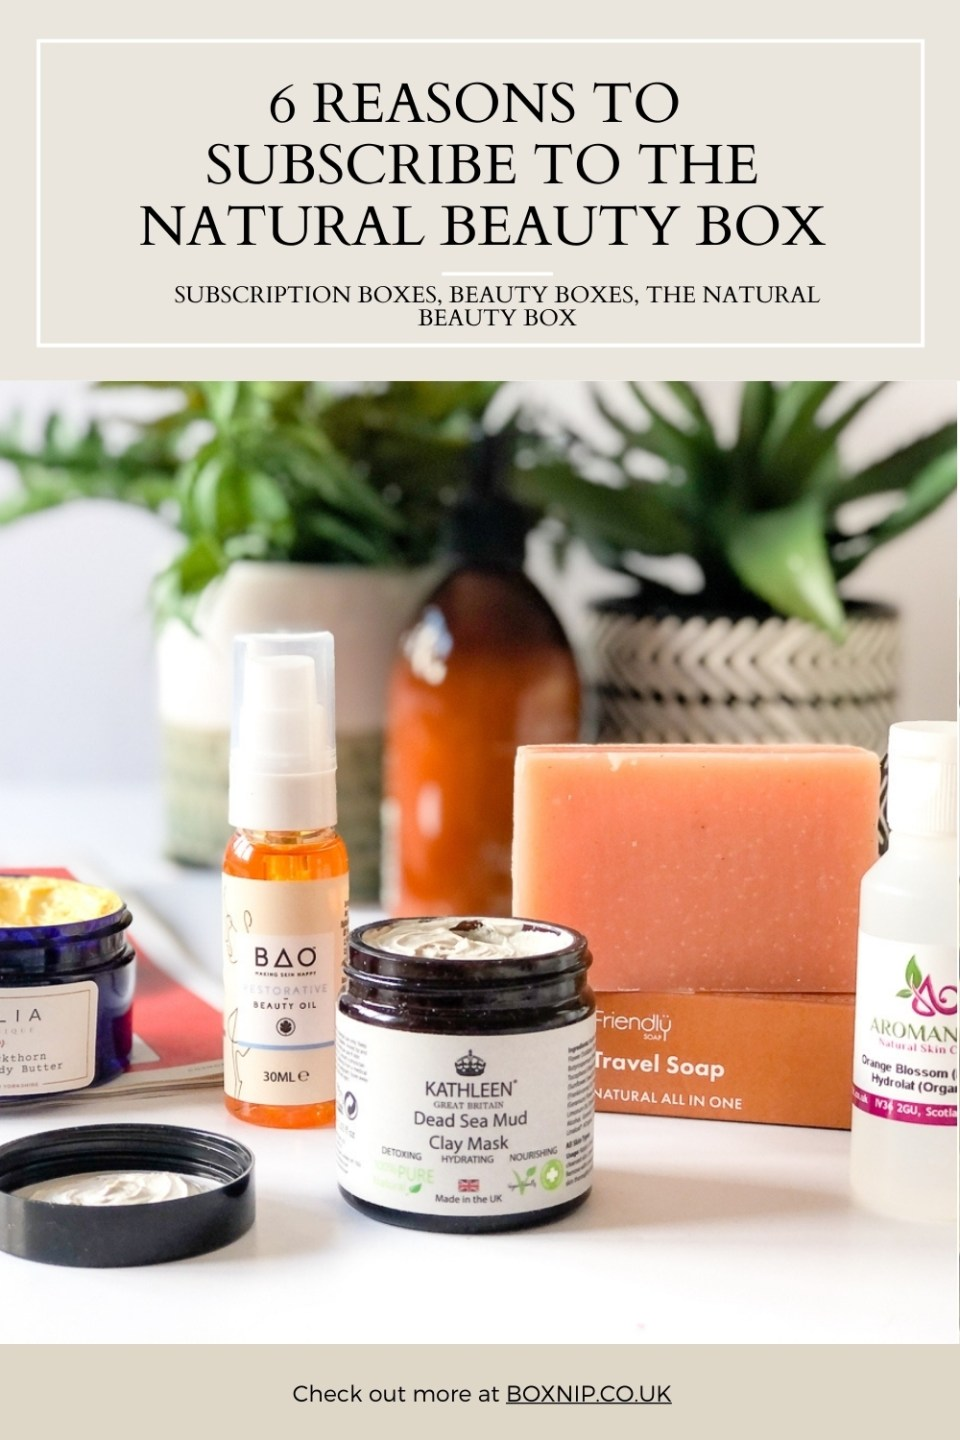 6 REASONS TO SUBSCRIBE TO THE NATURAL BEAUTY BOX